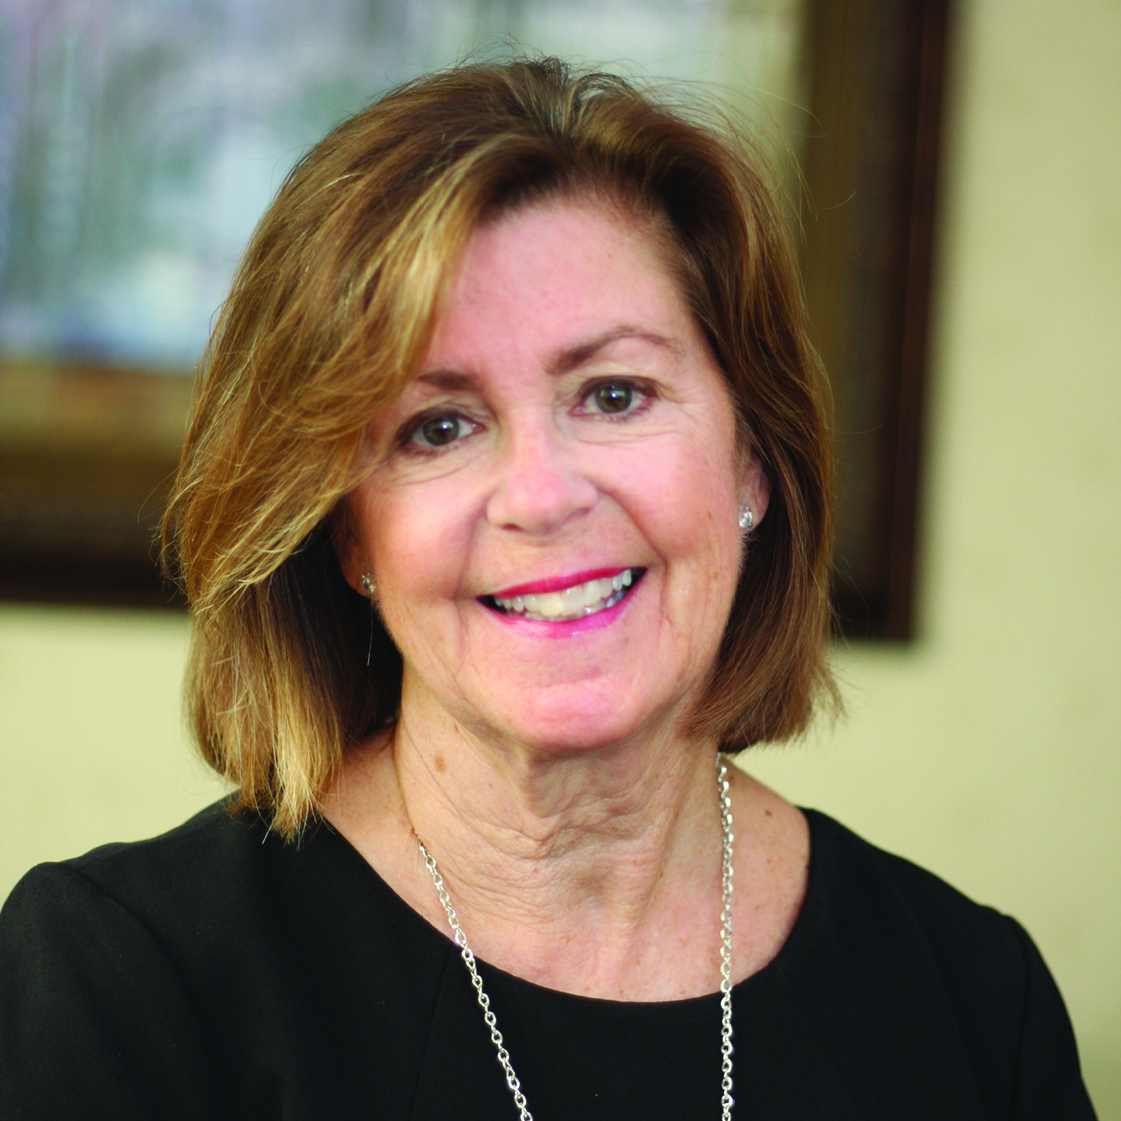 Terri Maxeiner, Vice President of Providence Solutions